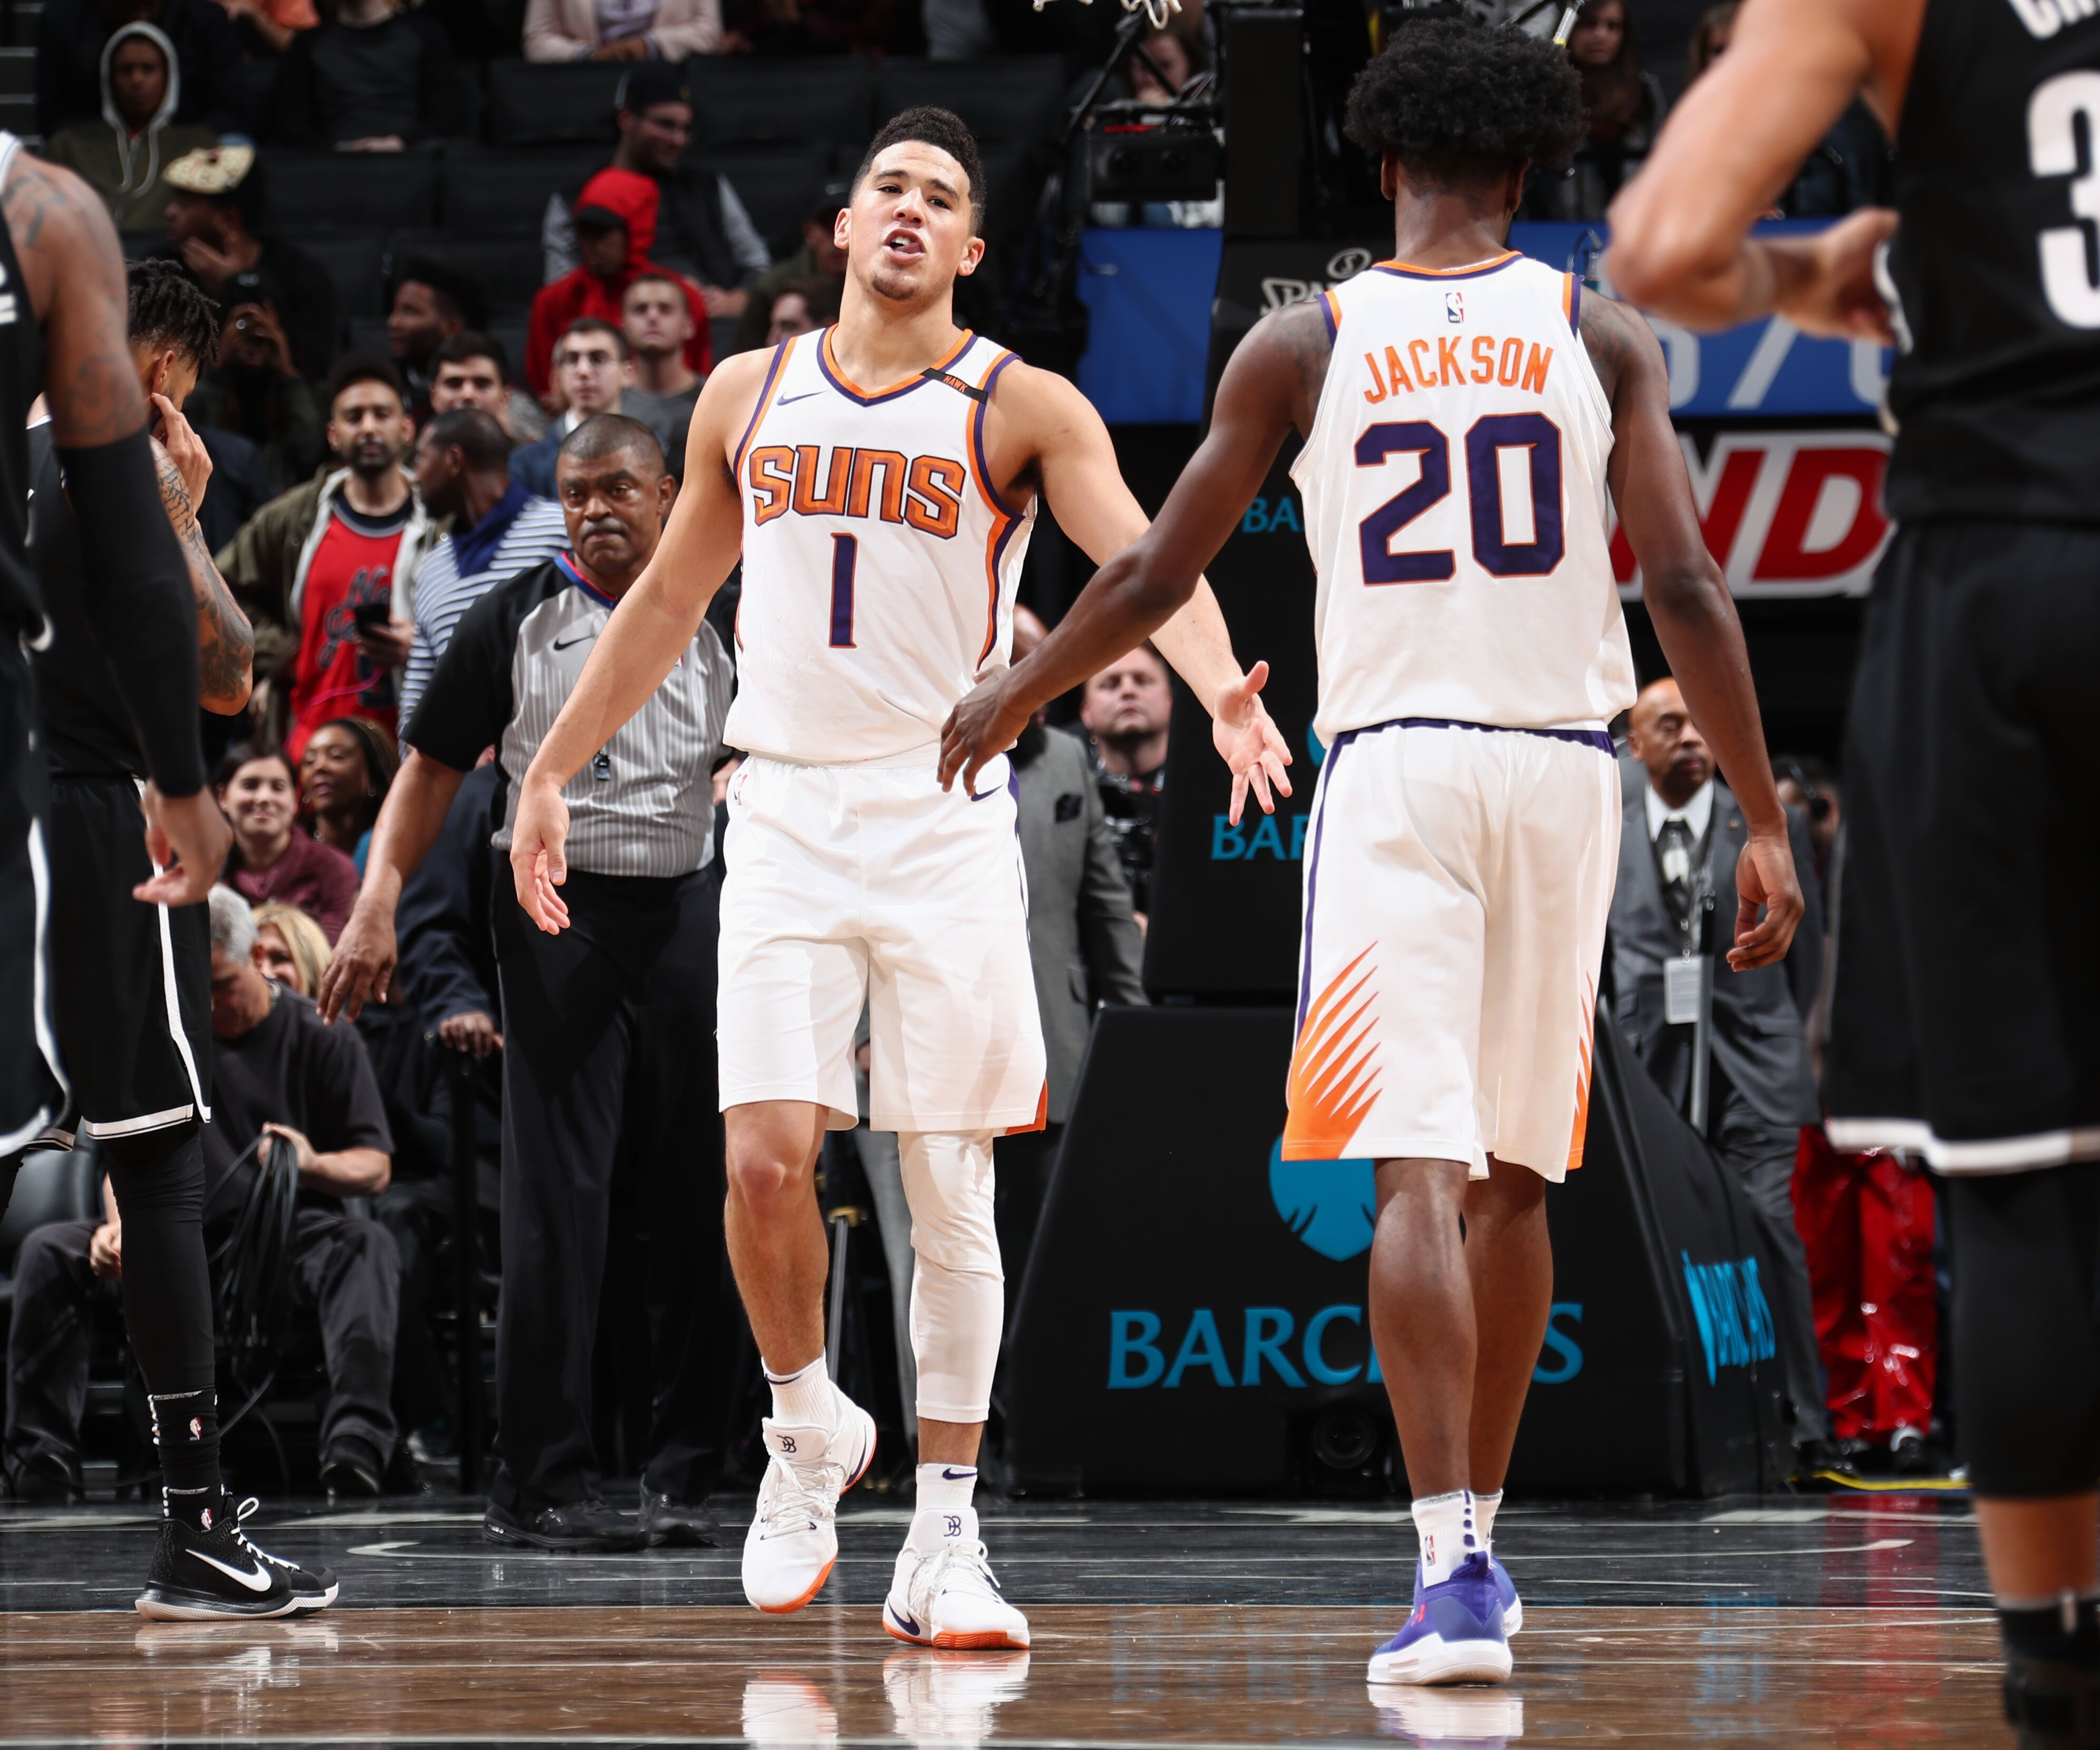 Predicting the Phoenix Suns player's 2K19 ratings - Valley